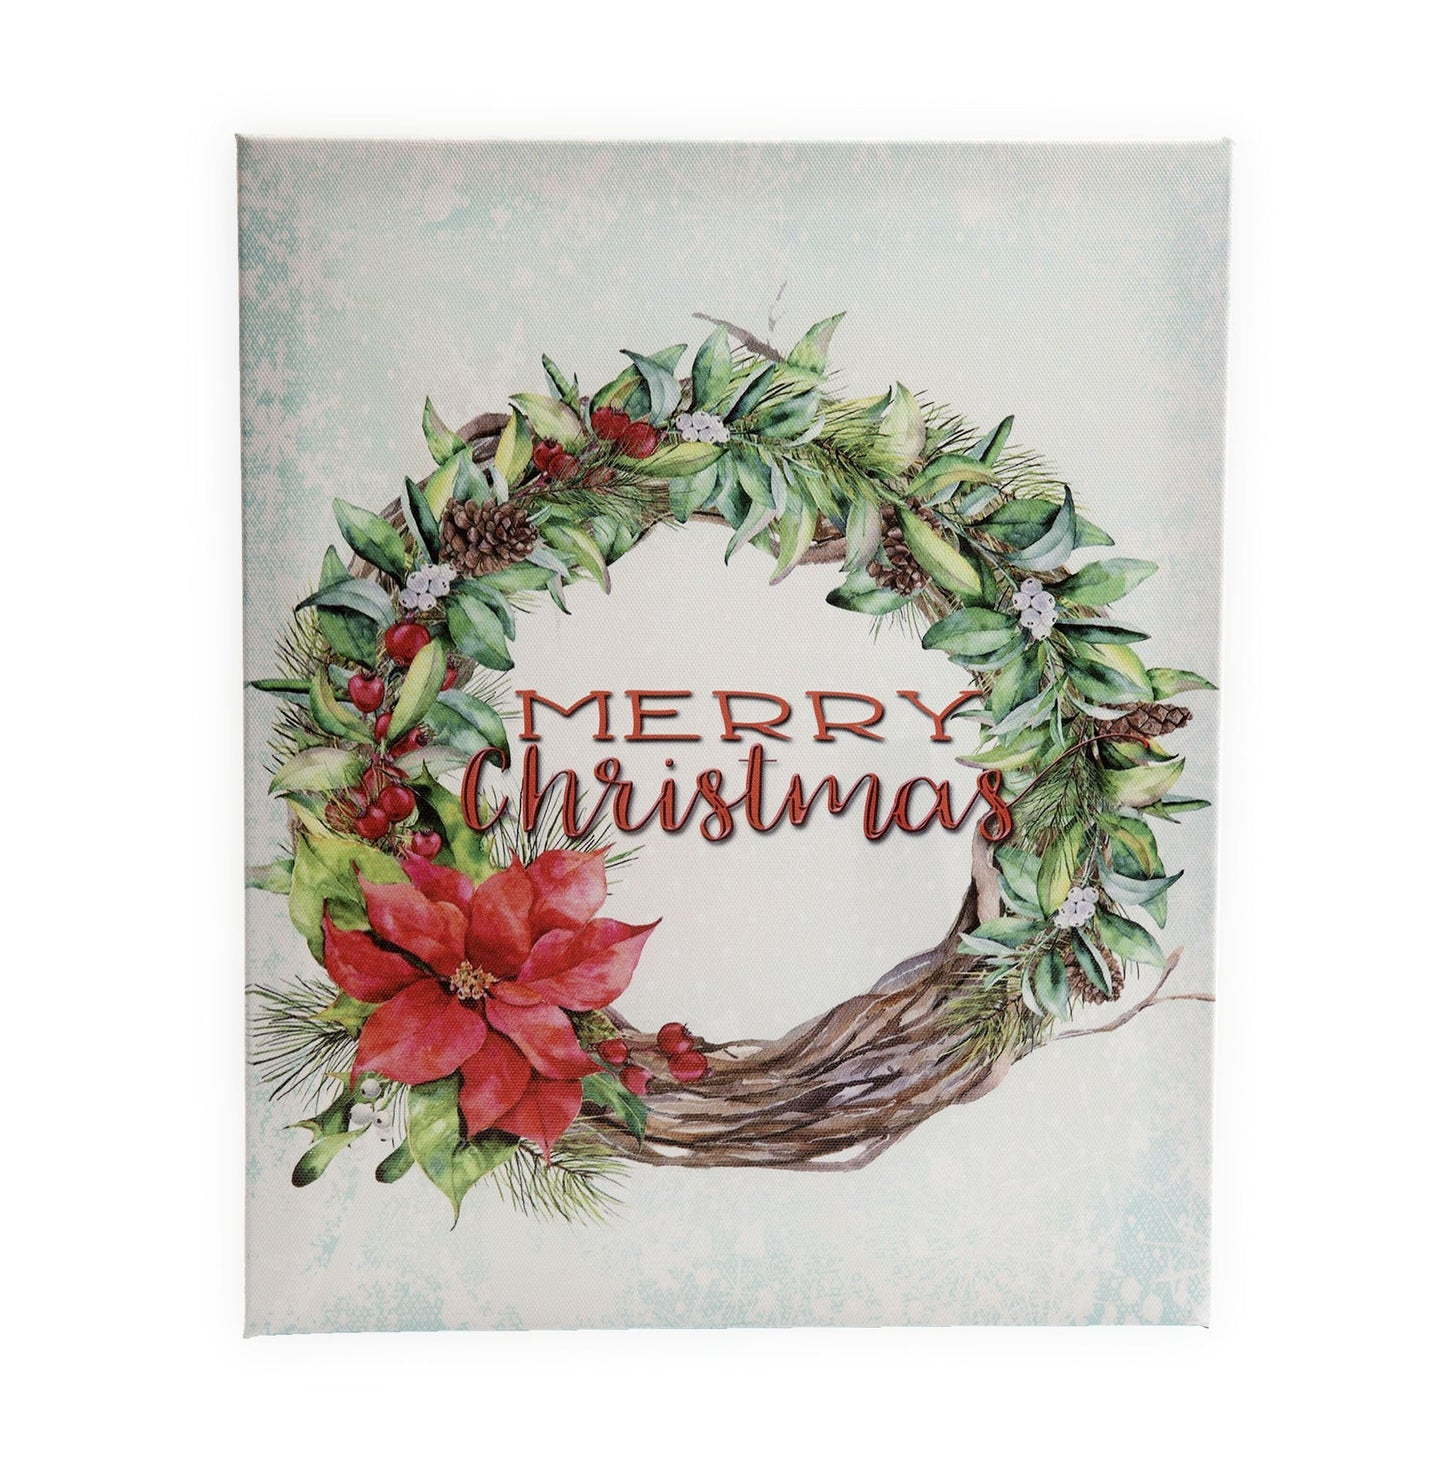 CP41 Merry Christmas Wreath Canvas